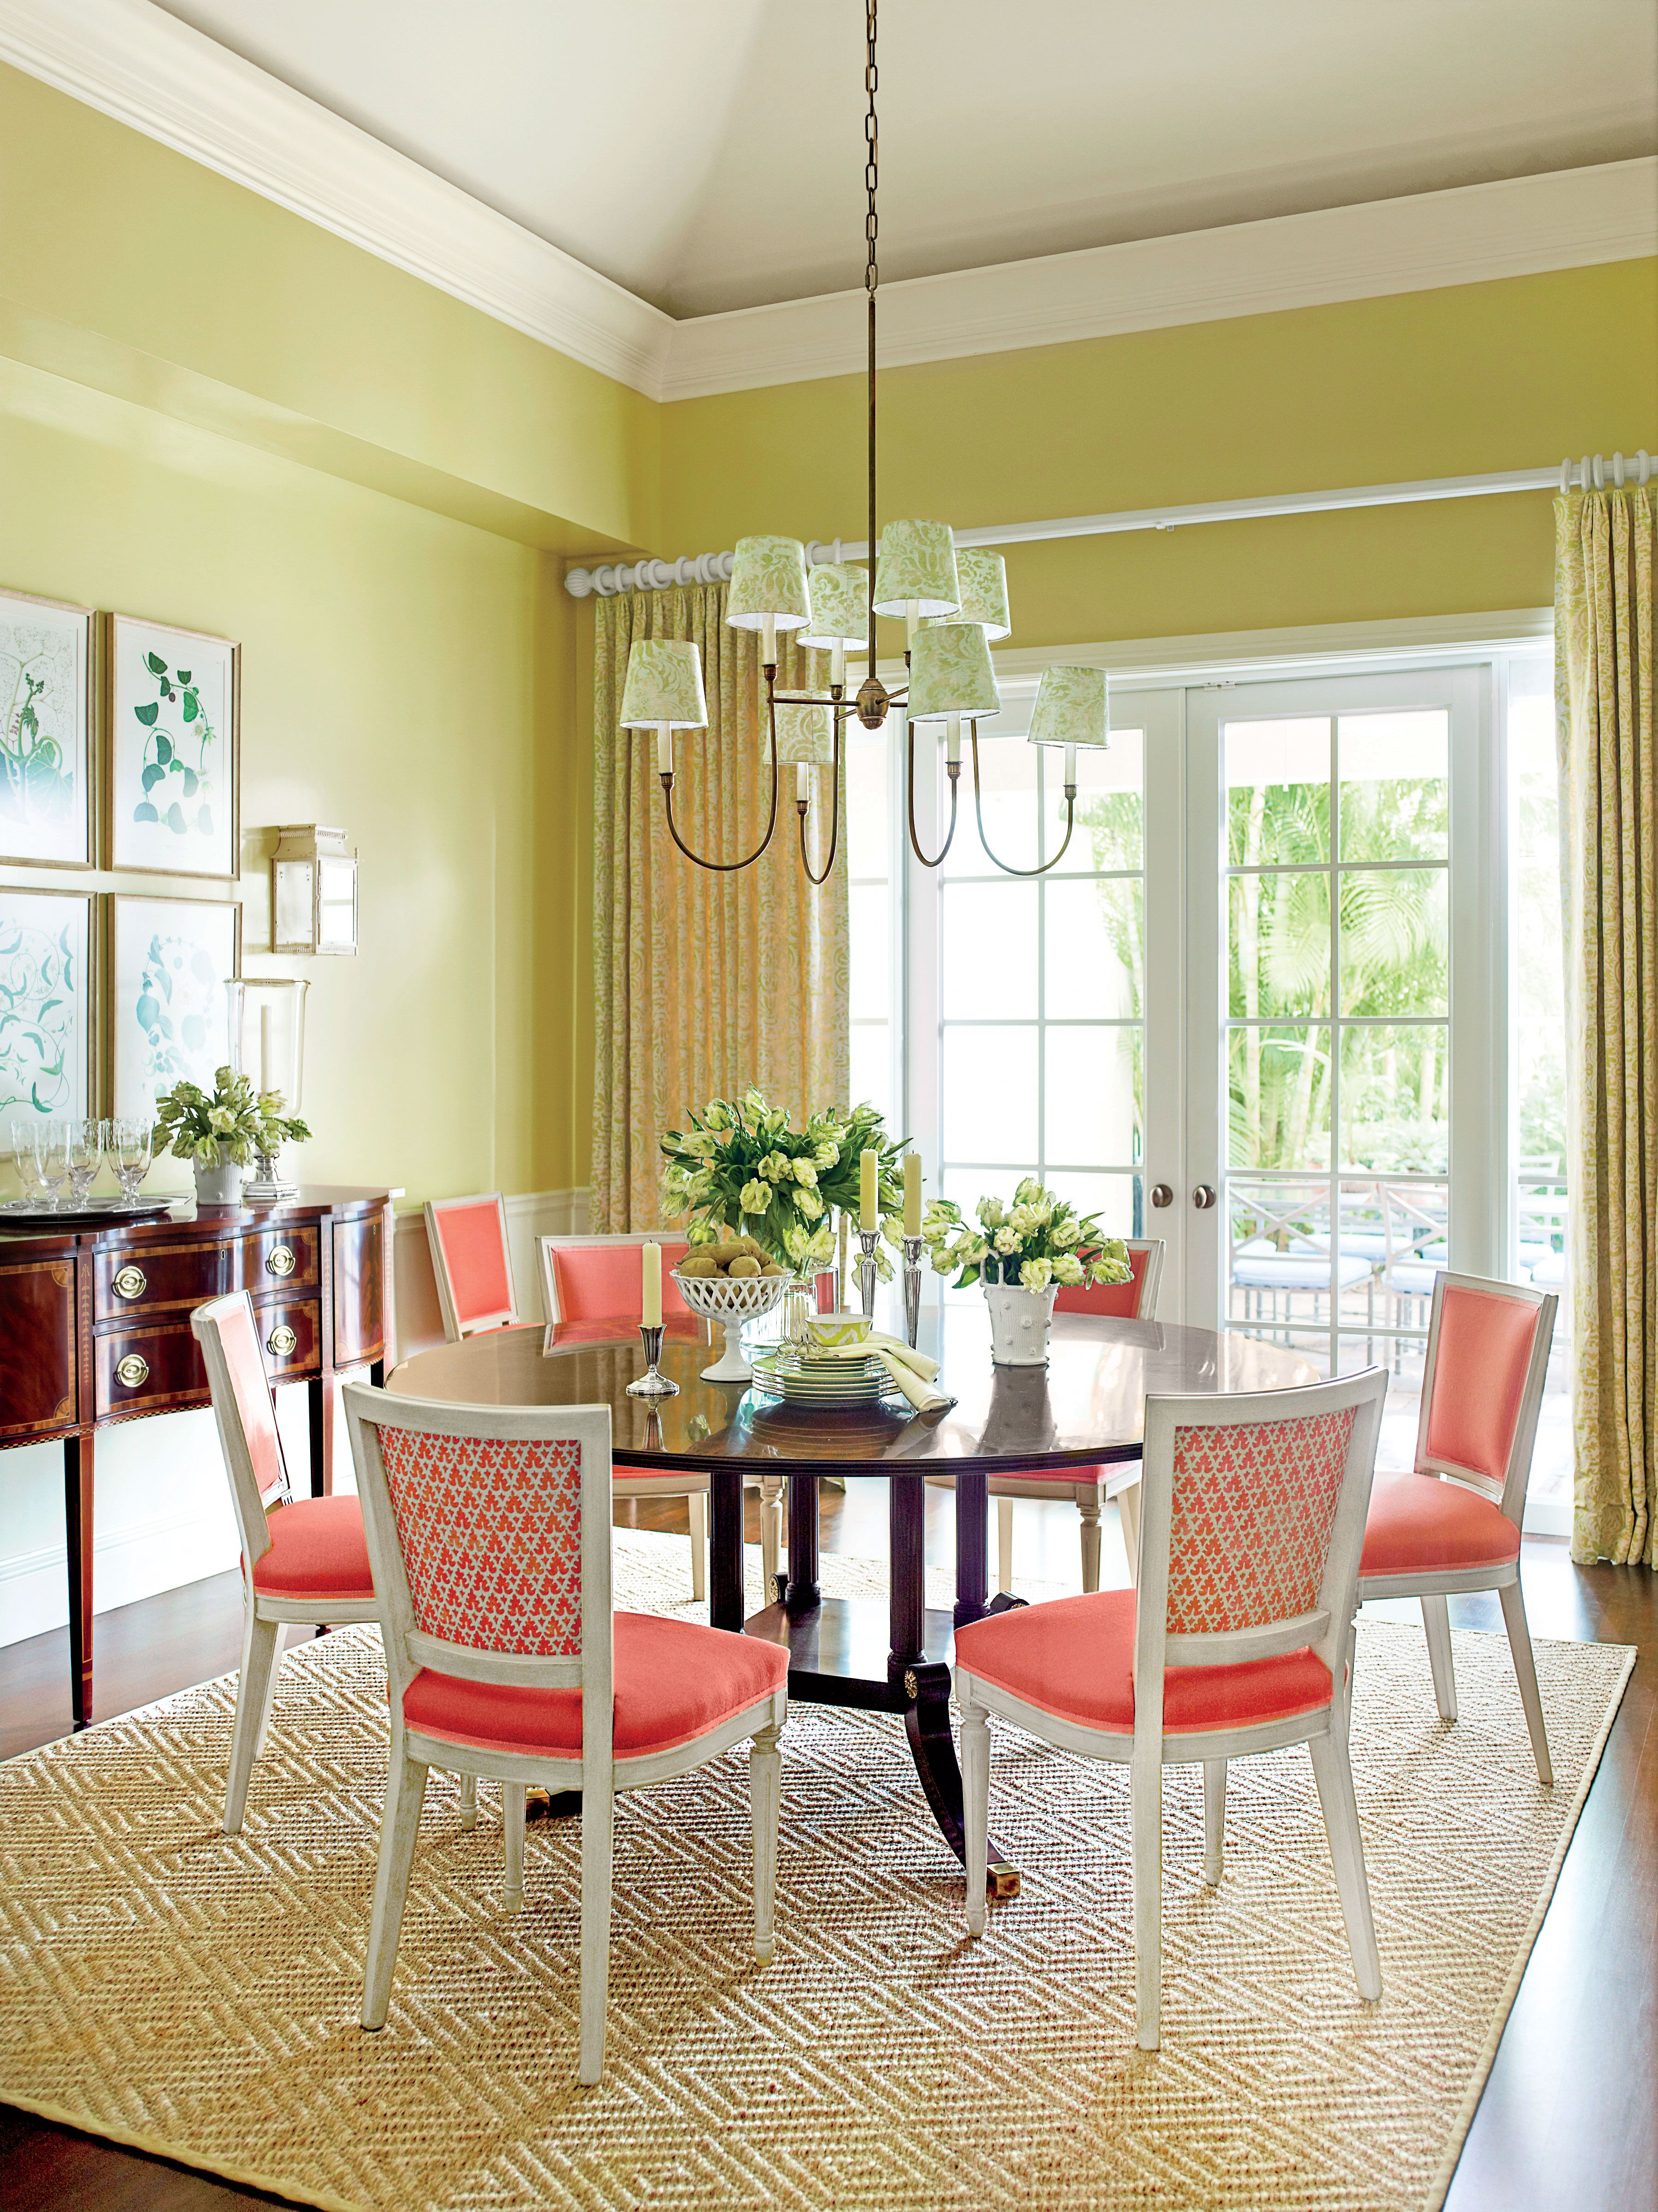 4 Give Your Dining Room A Splash Of Bold Color